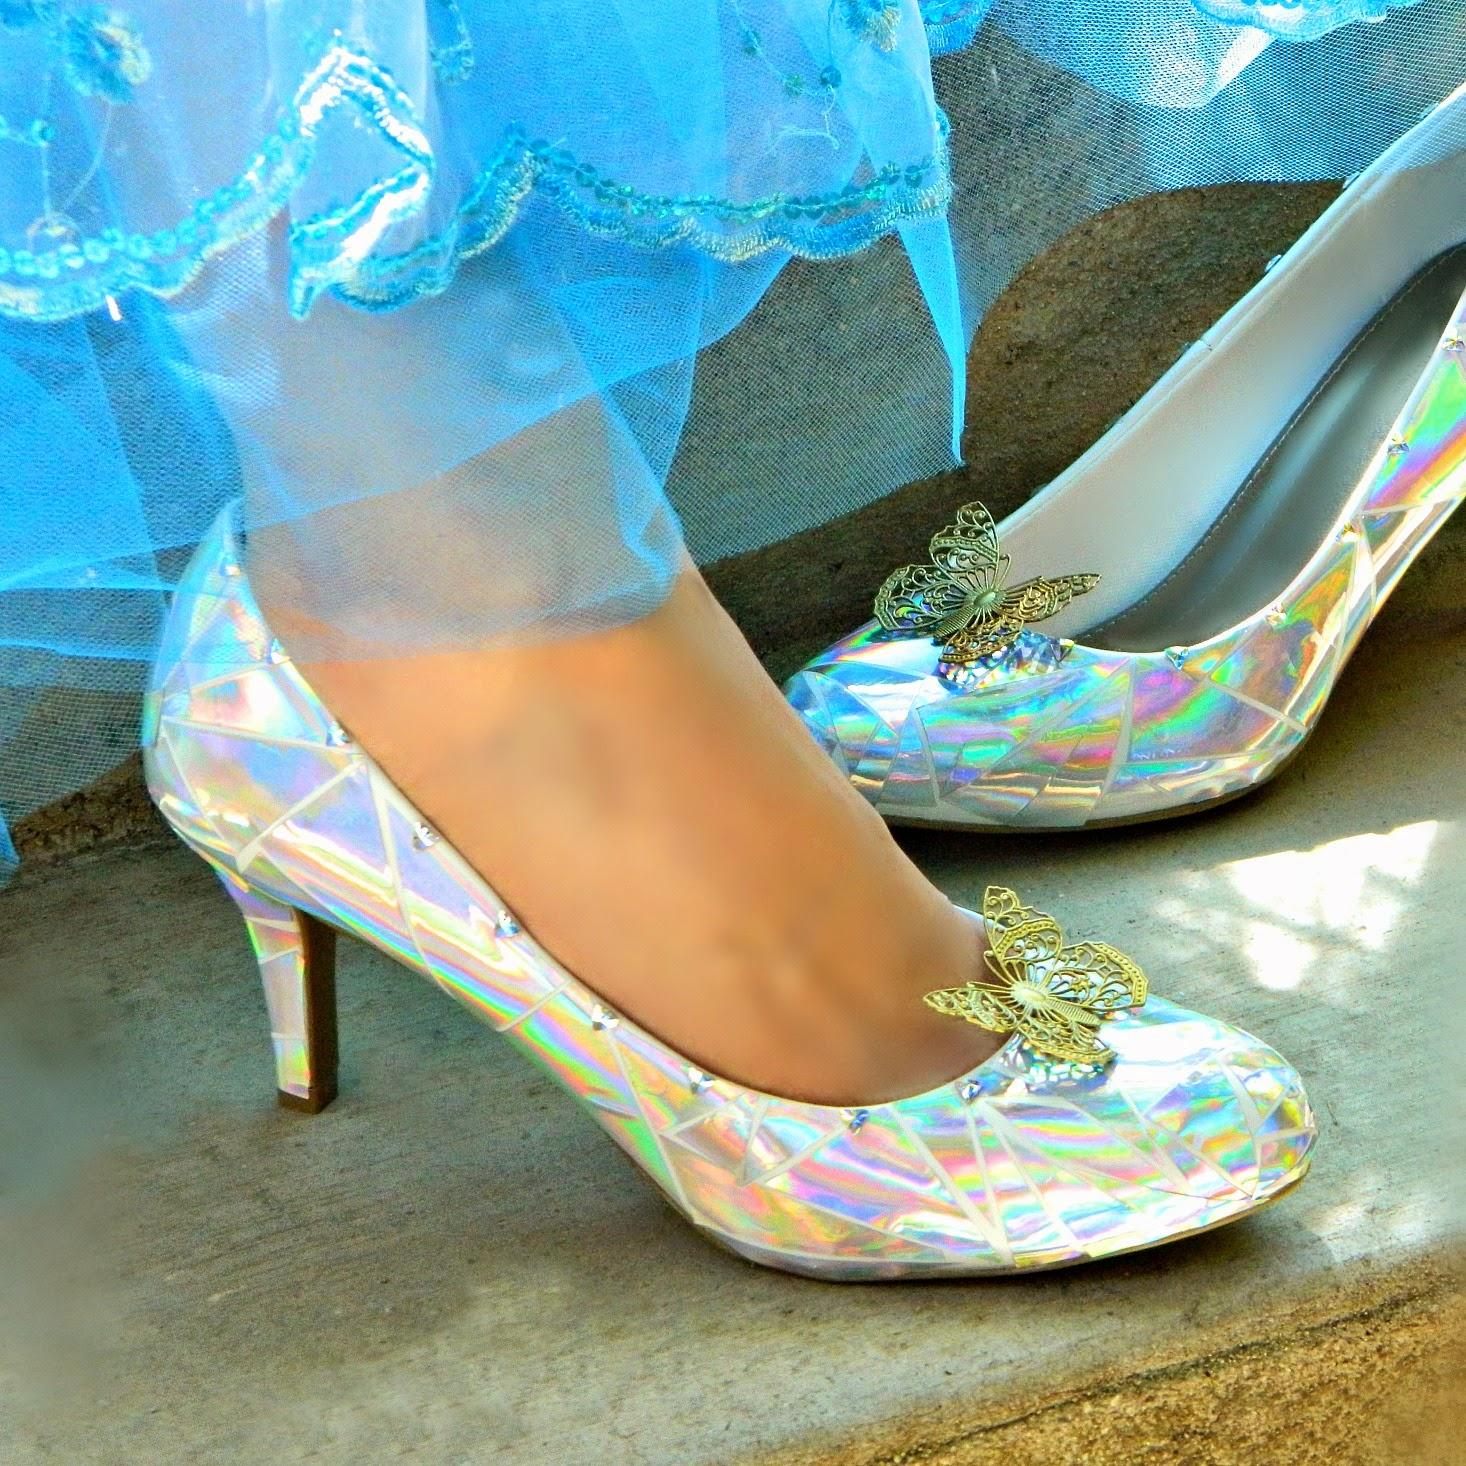 cdcbf06a5 A wearable glass slipper! The original from the latest Cinderella movie.  They wouldn't be complete without the butterfly shoe clips!